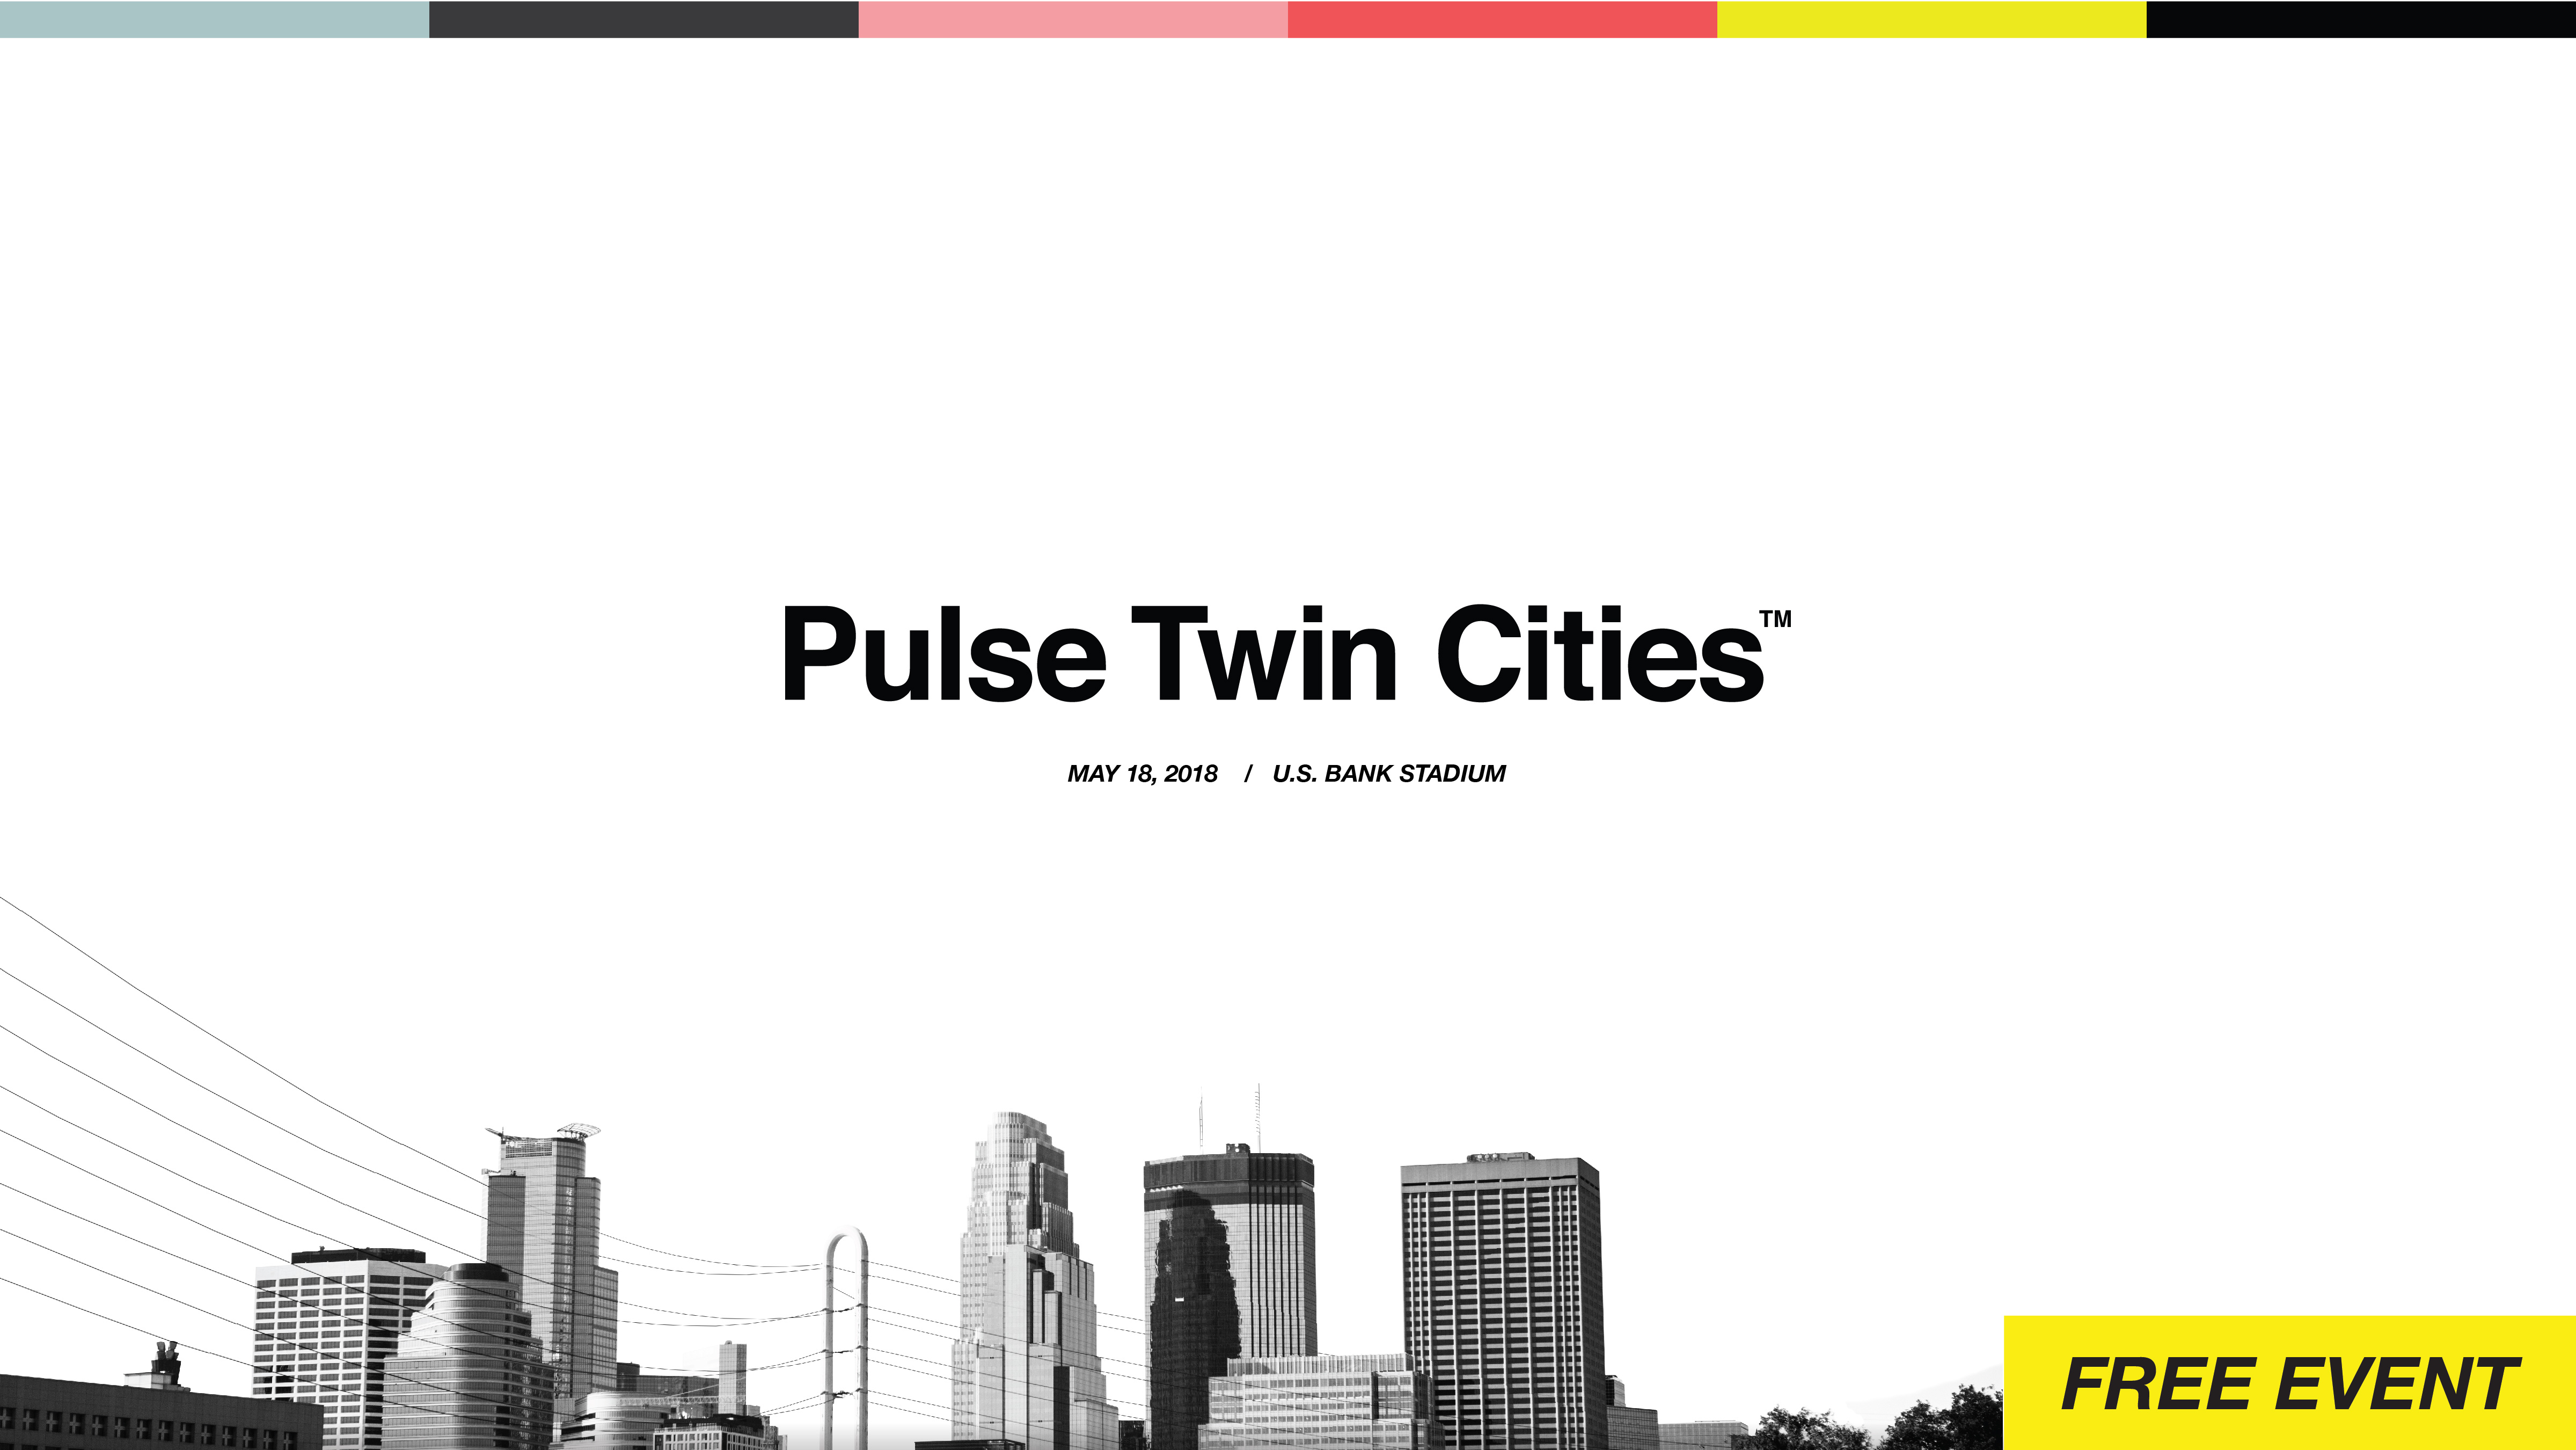 Pulse Twin Cities